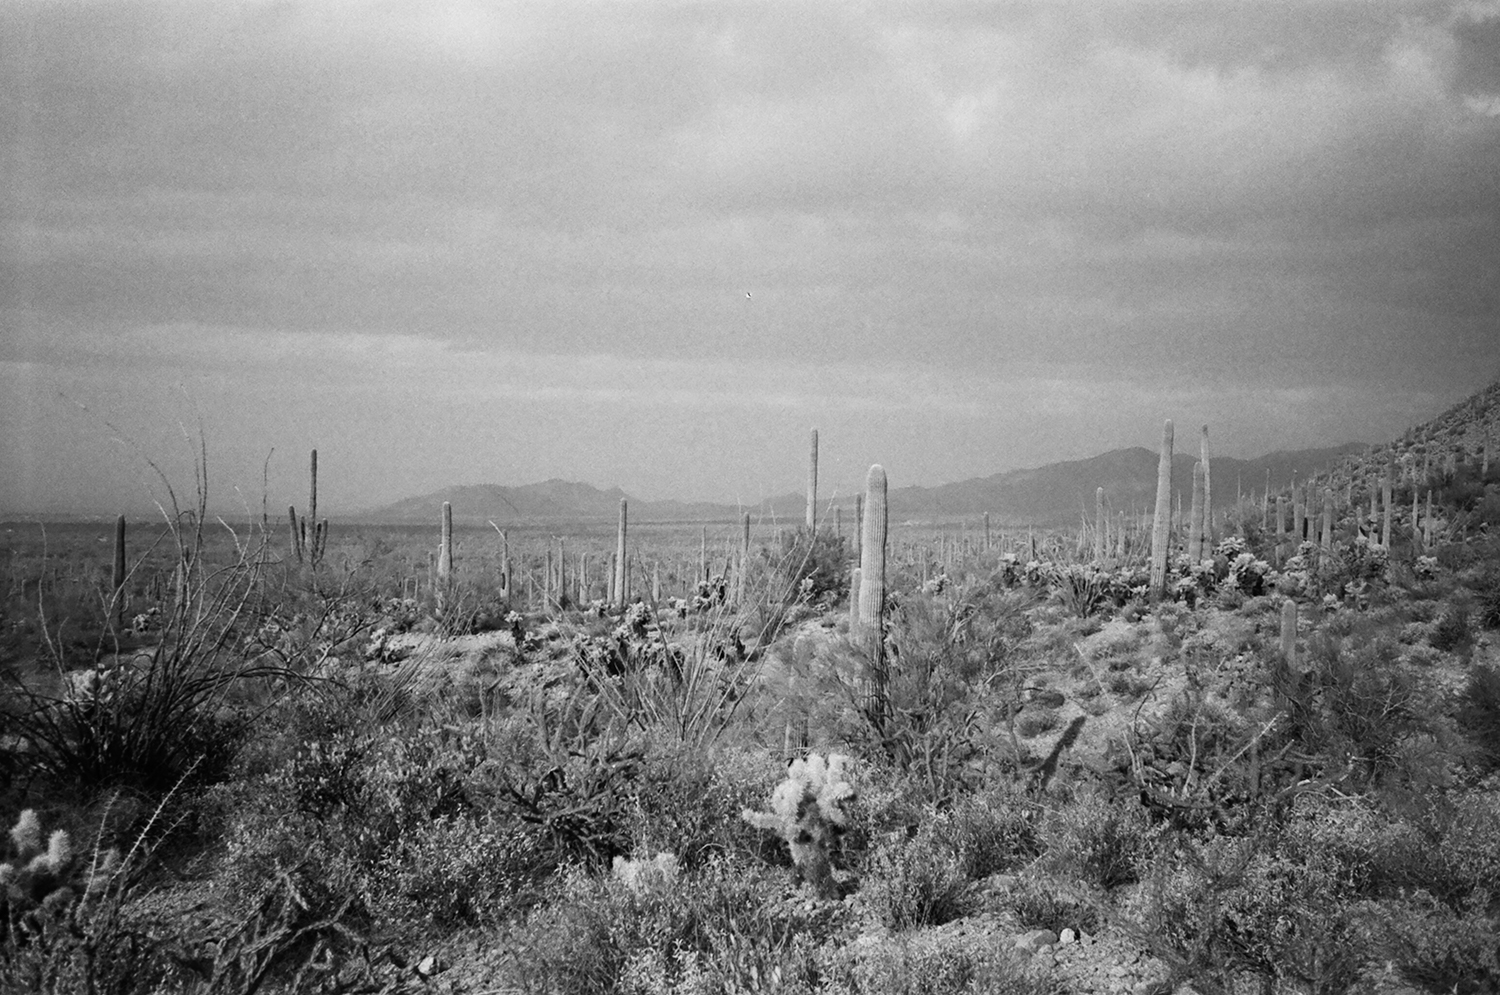 Arizona cacti black and white landscape